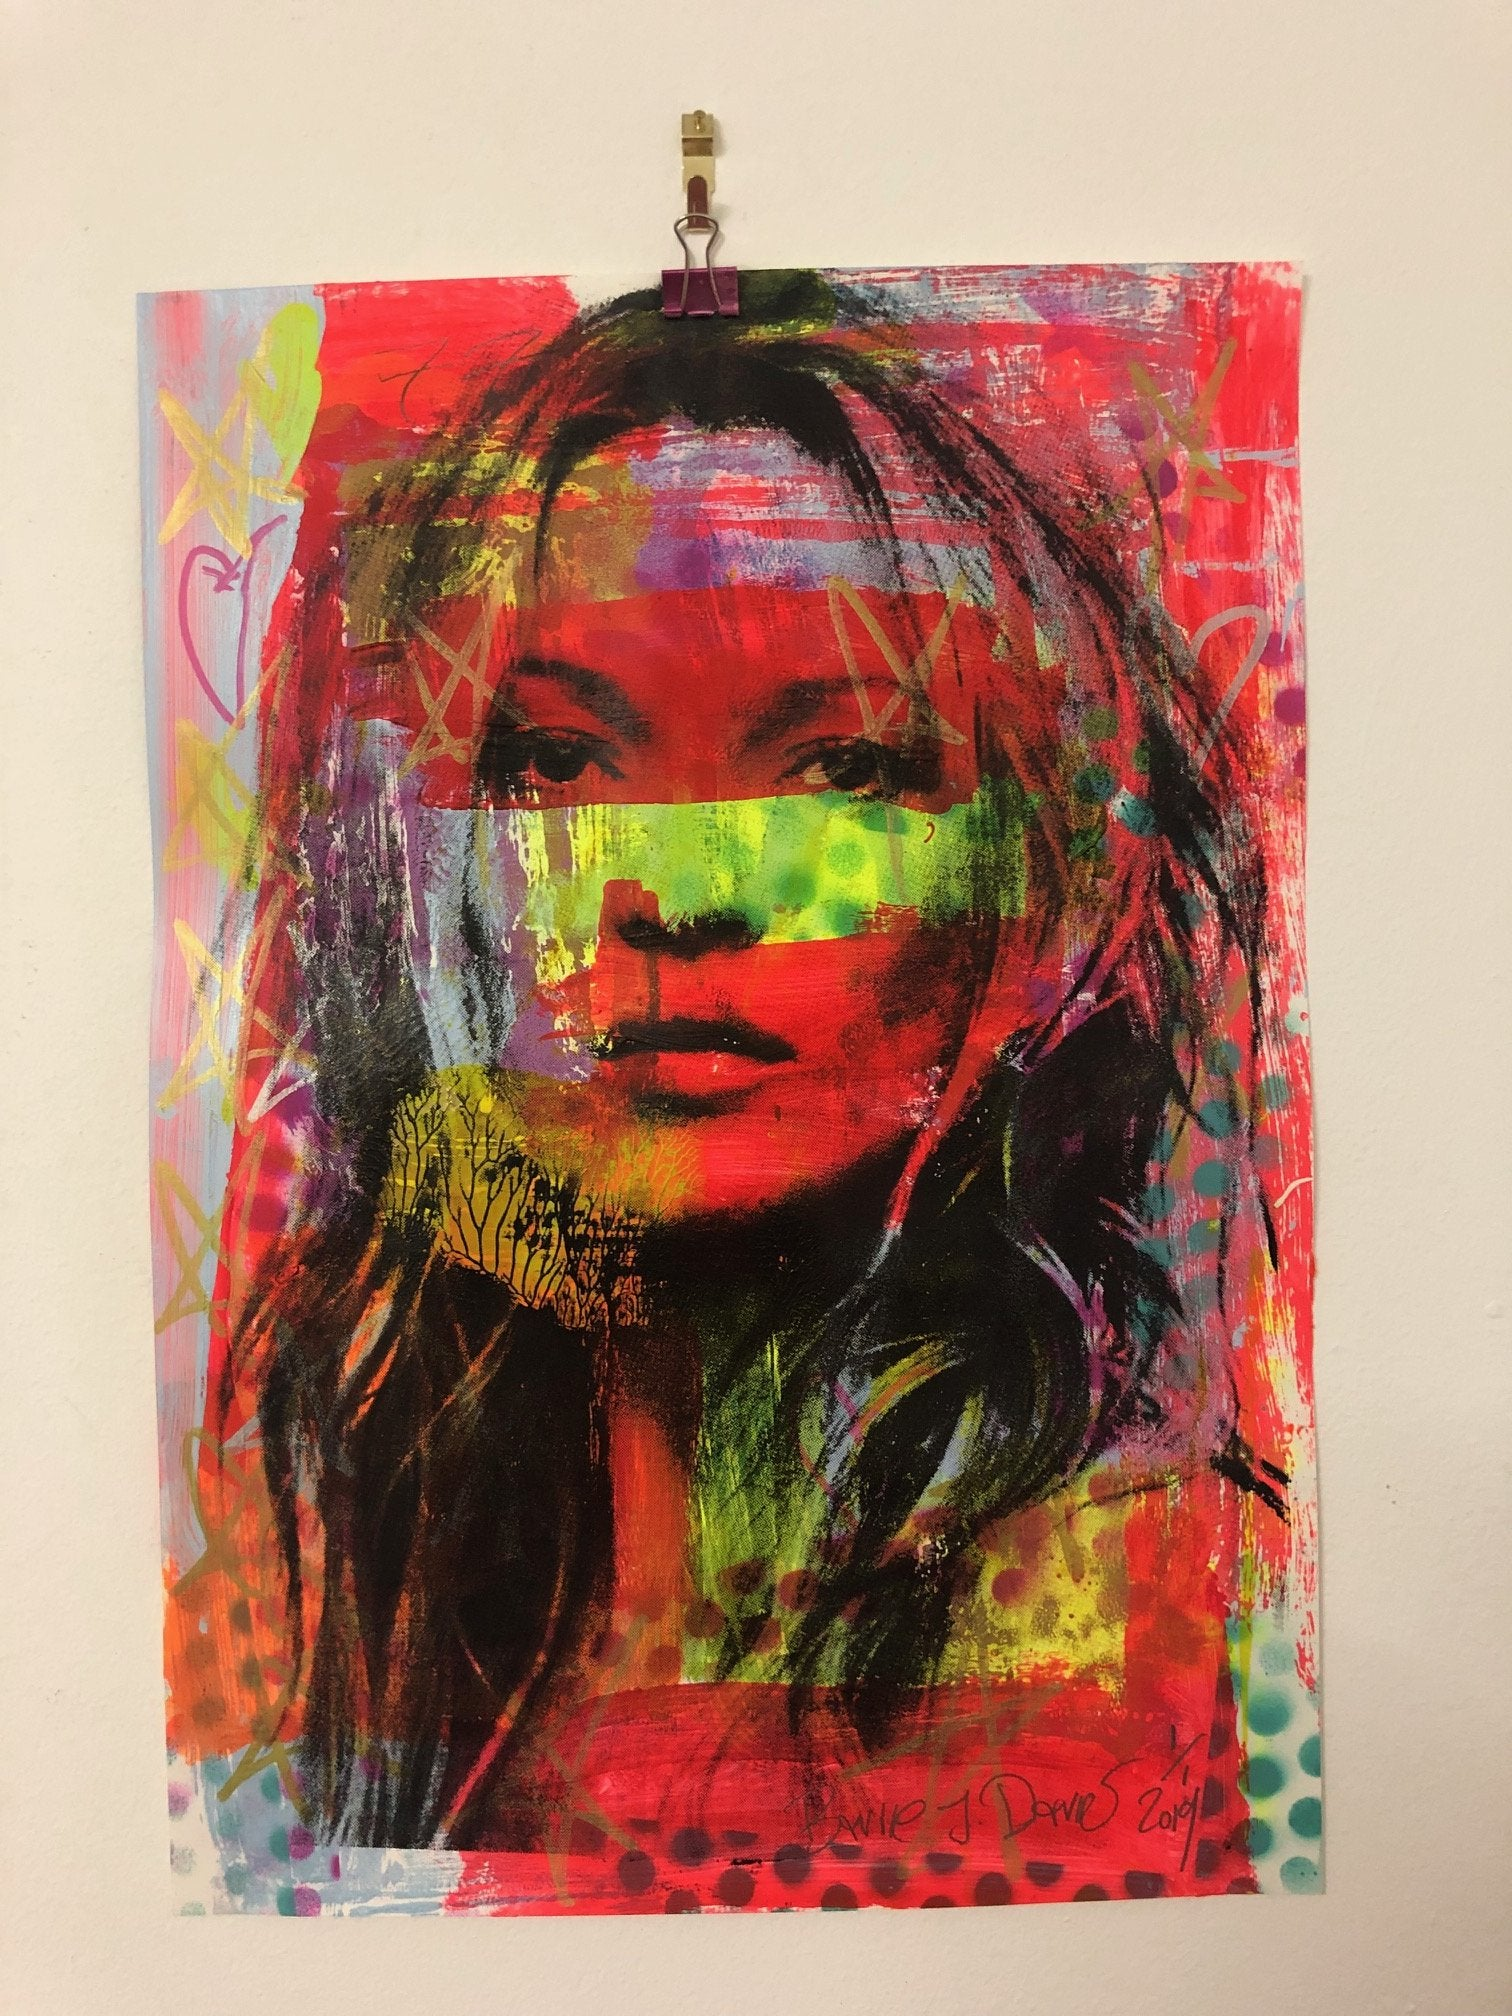 Super Kate Print by Barrie J Davies 2019 - unframed Silkscreen print on paper (hand finished) edition of 1/1 - A3 size 29cm x 42cm. Barrie J Davies is an Artist - Pop Art and Street art inspired Artist based in Brighton England UK - Pop Art Paintings, Street Art Prints & Editions available.